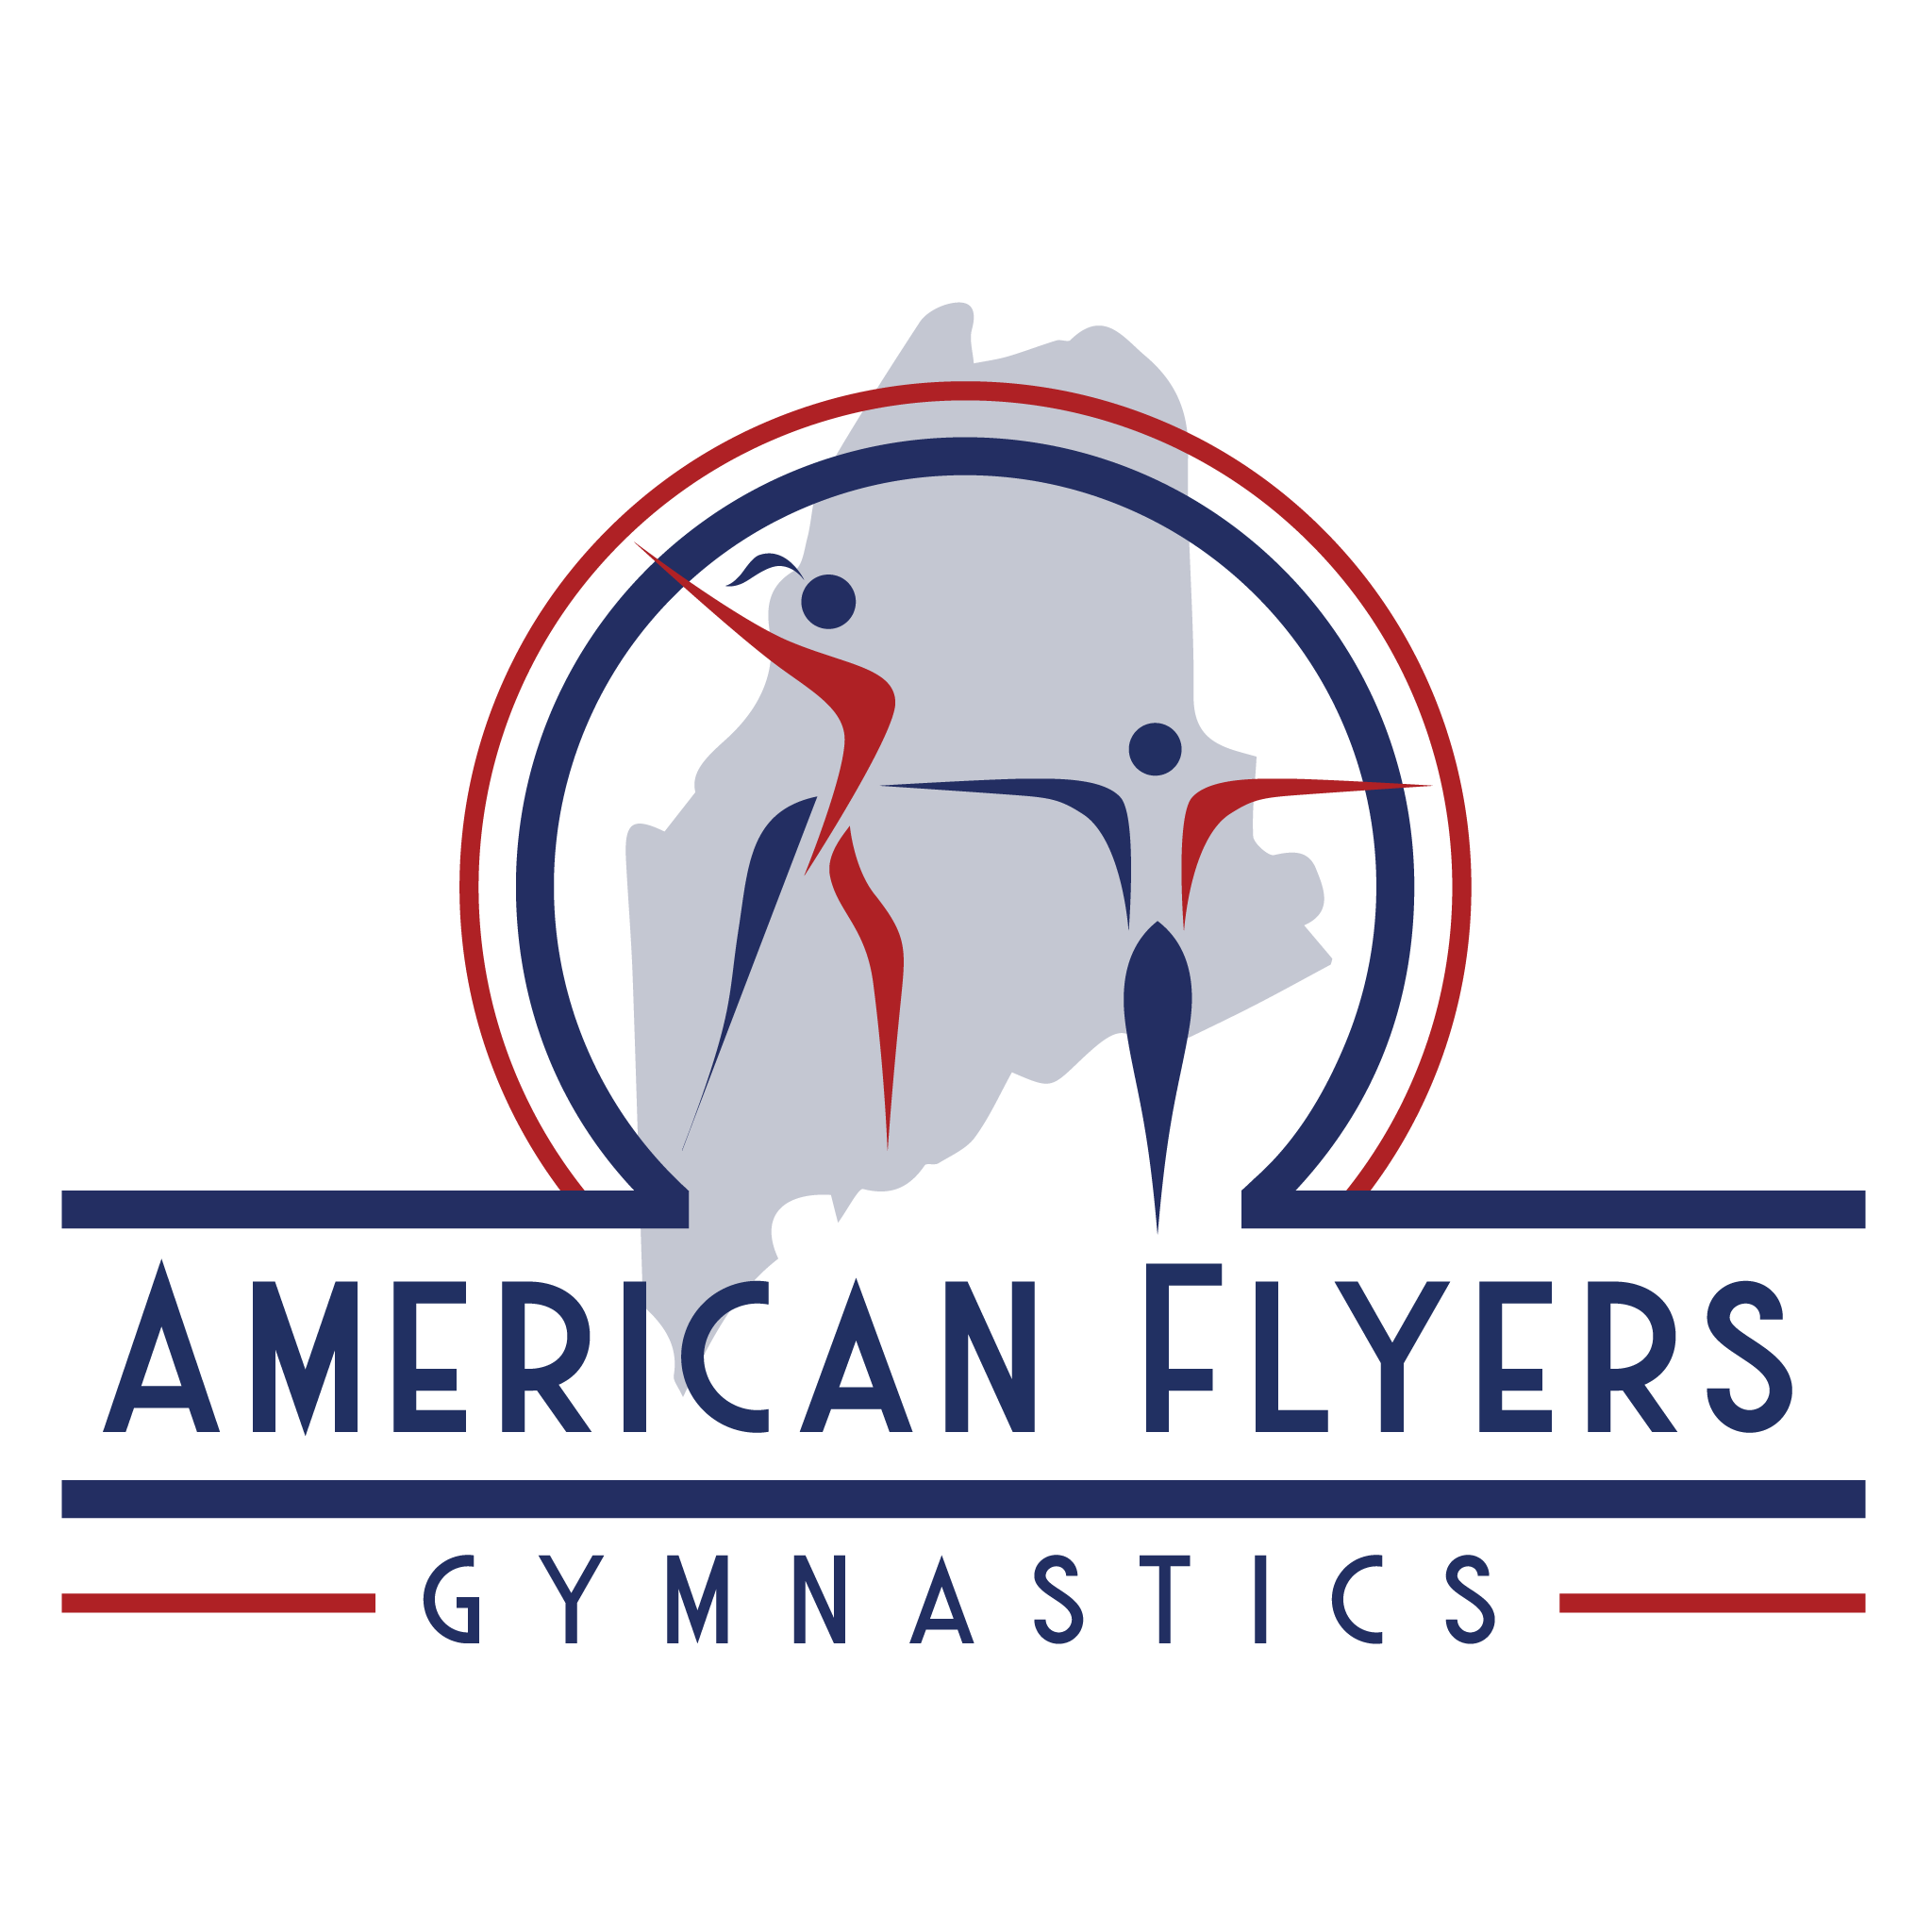 The American Flyers Gymnastics Team logo